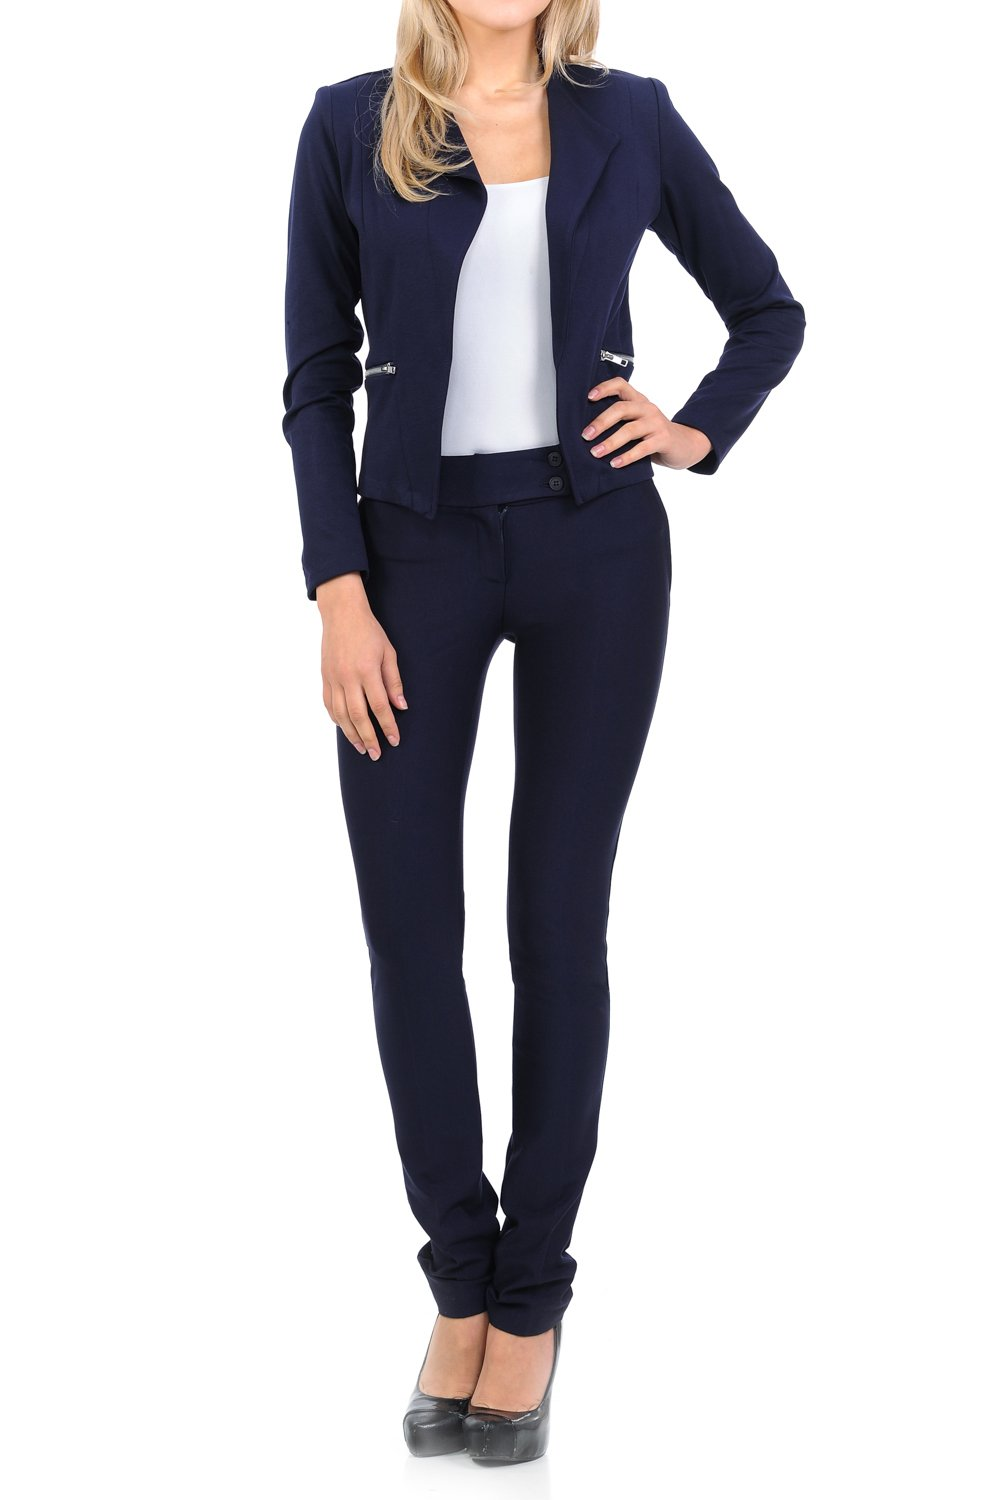 Sweethabit Womens Classic Wear to Work Solid Pants Suit Set(3020set) (XLarge, 3125-3030 Navy)